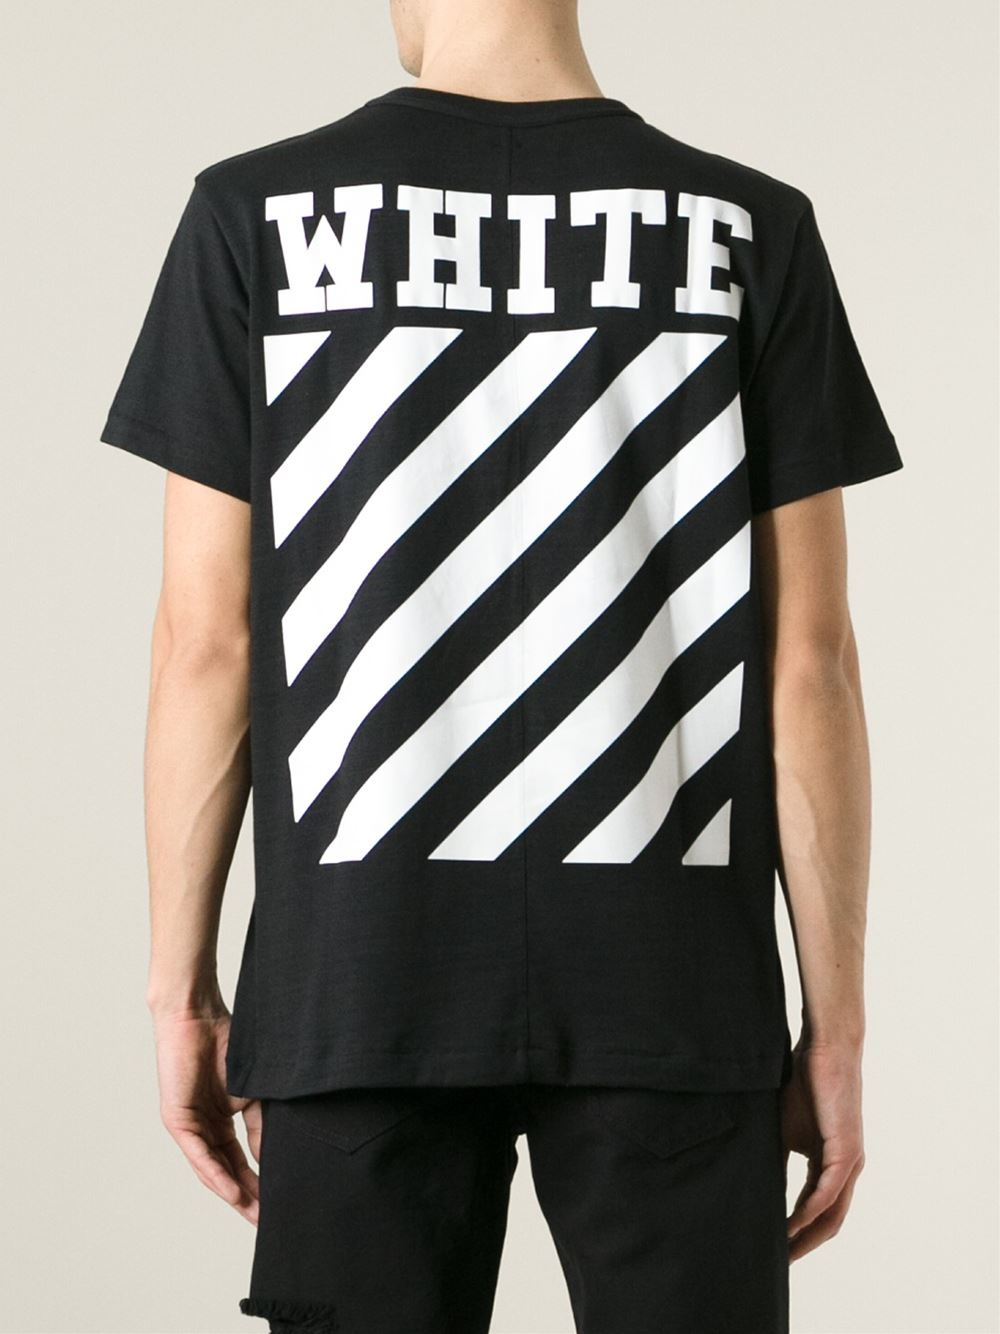 Off-white c/o virgil abloh Caravaggio-Print T-Shirt in Black for ...